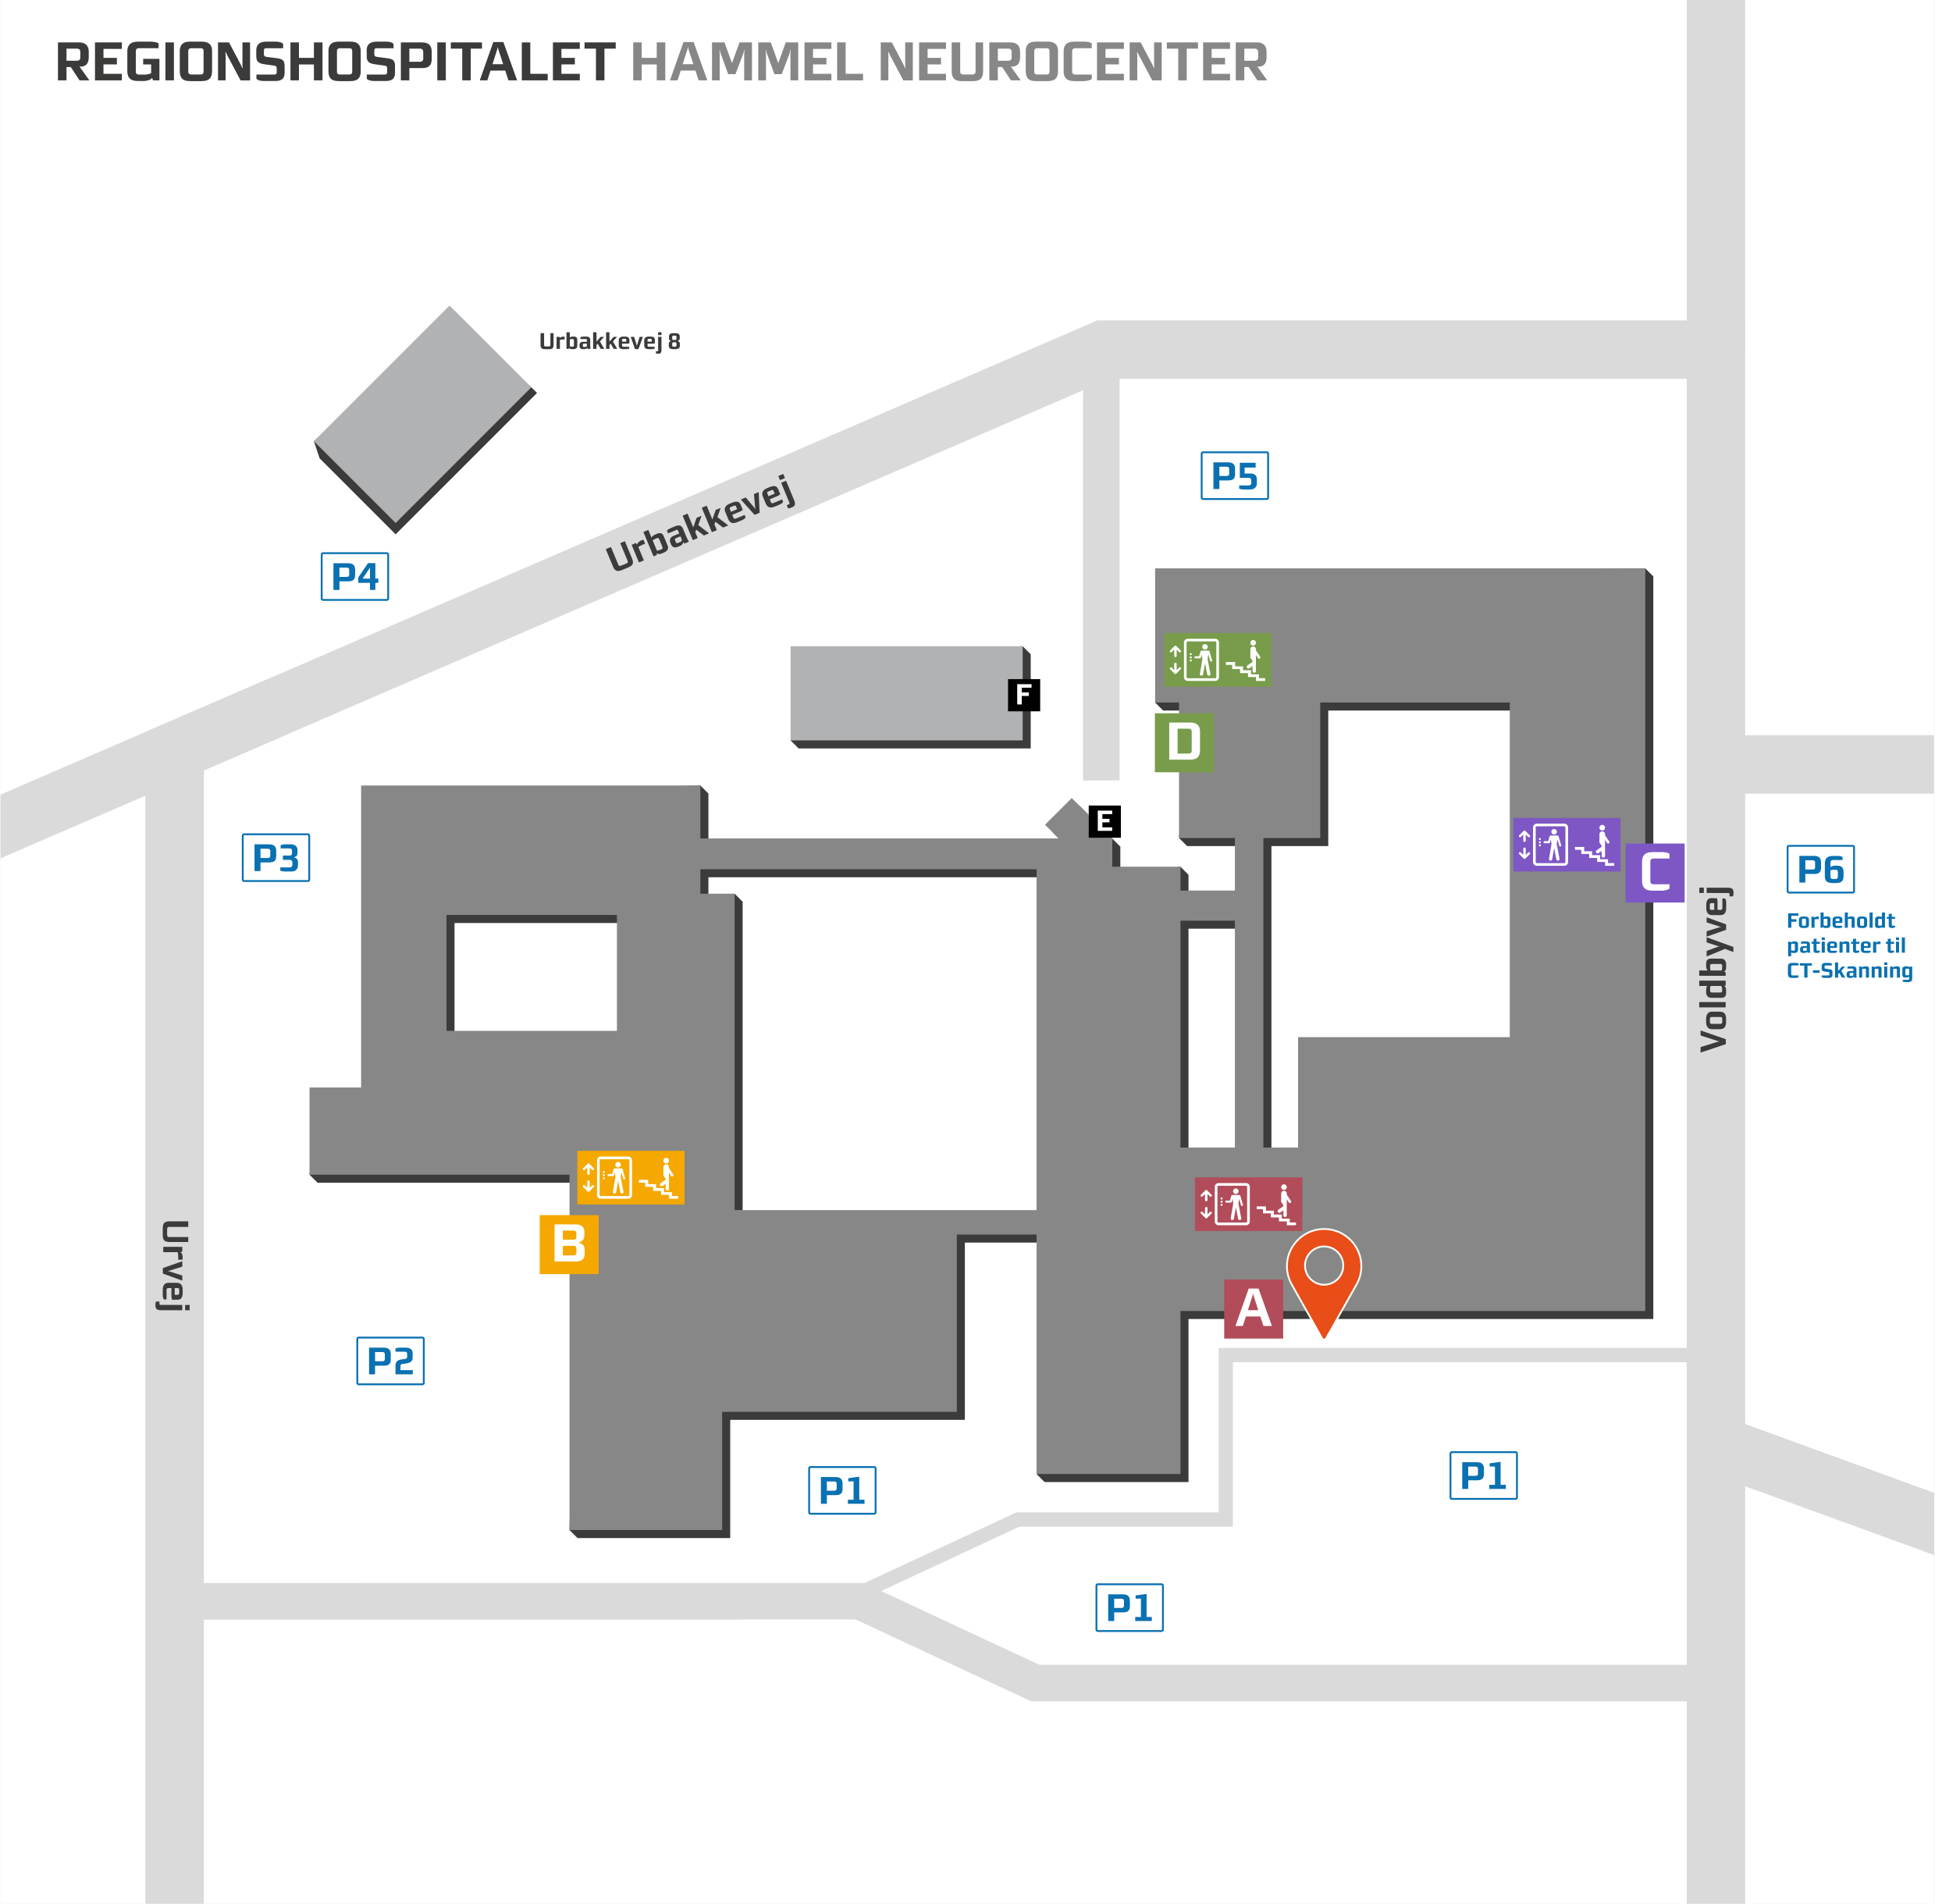 Oversigtskort over Hammel Neurocenter